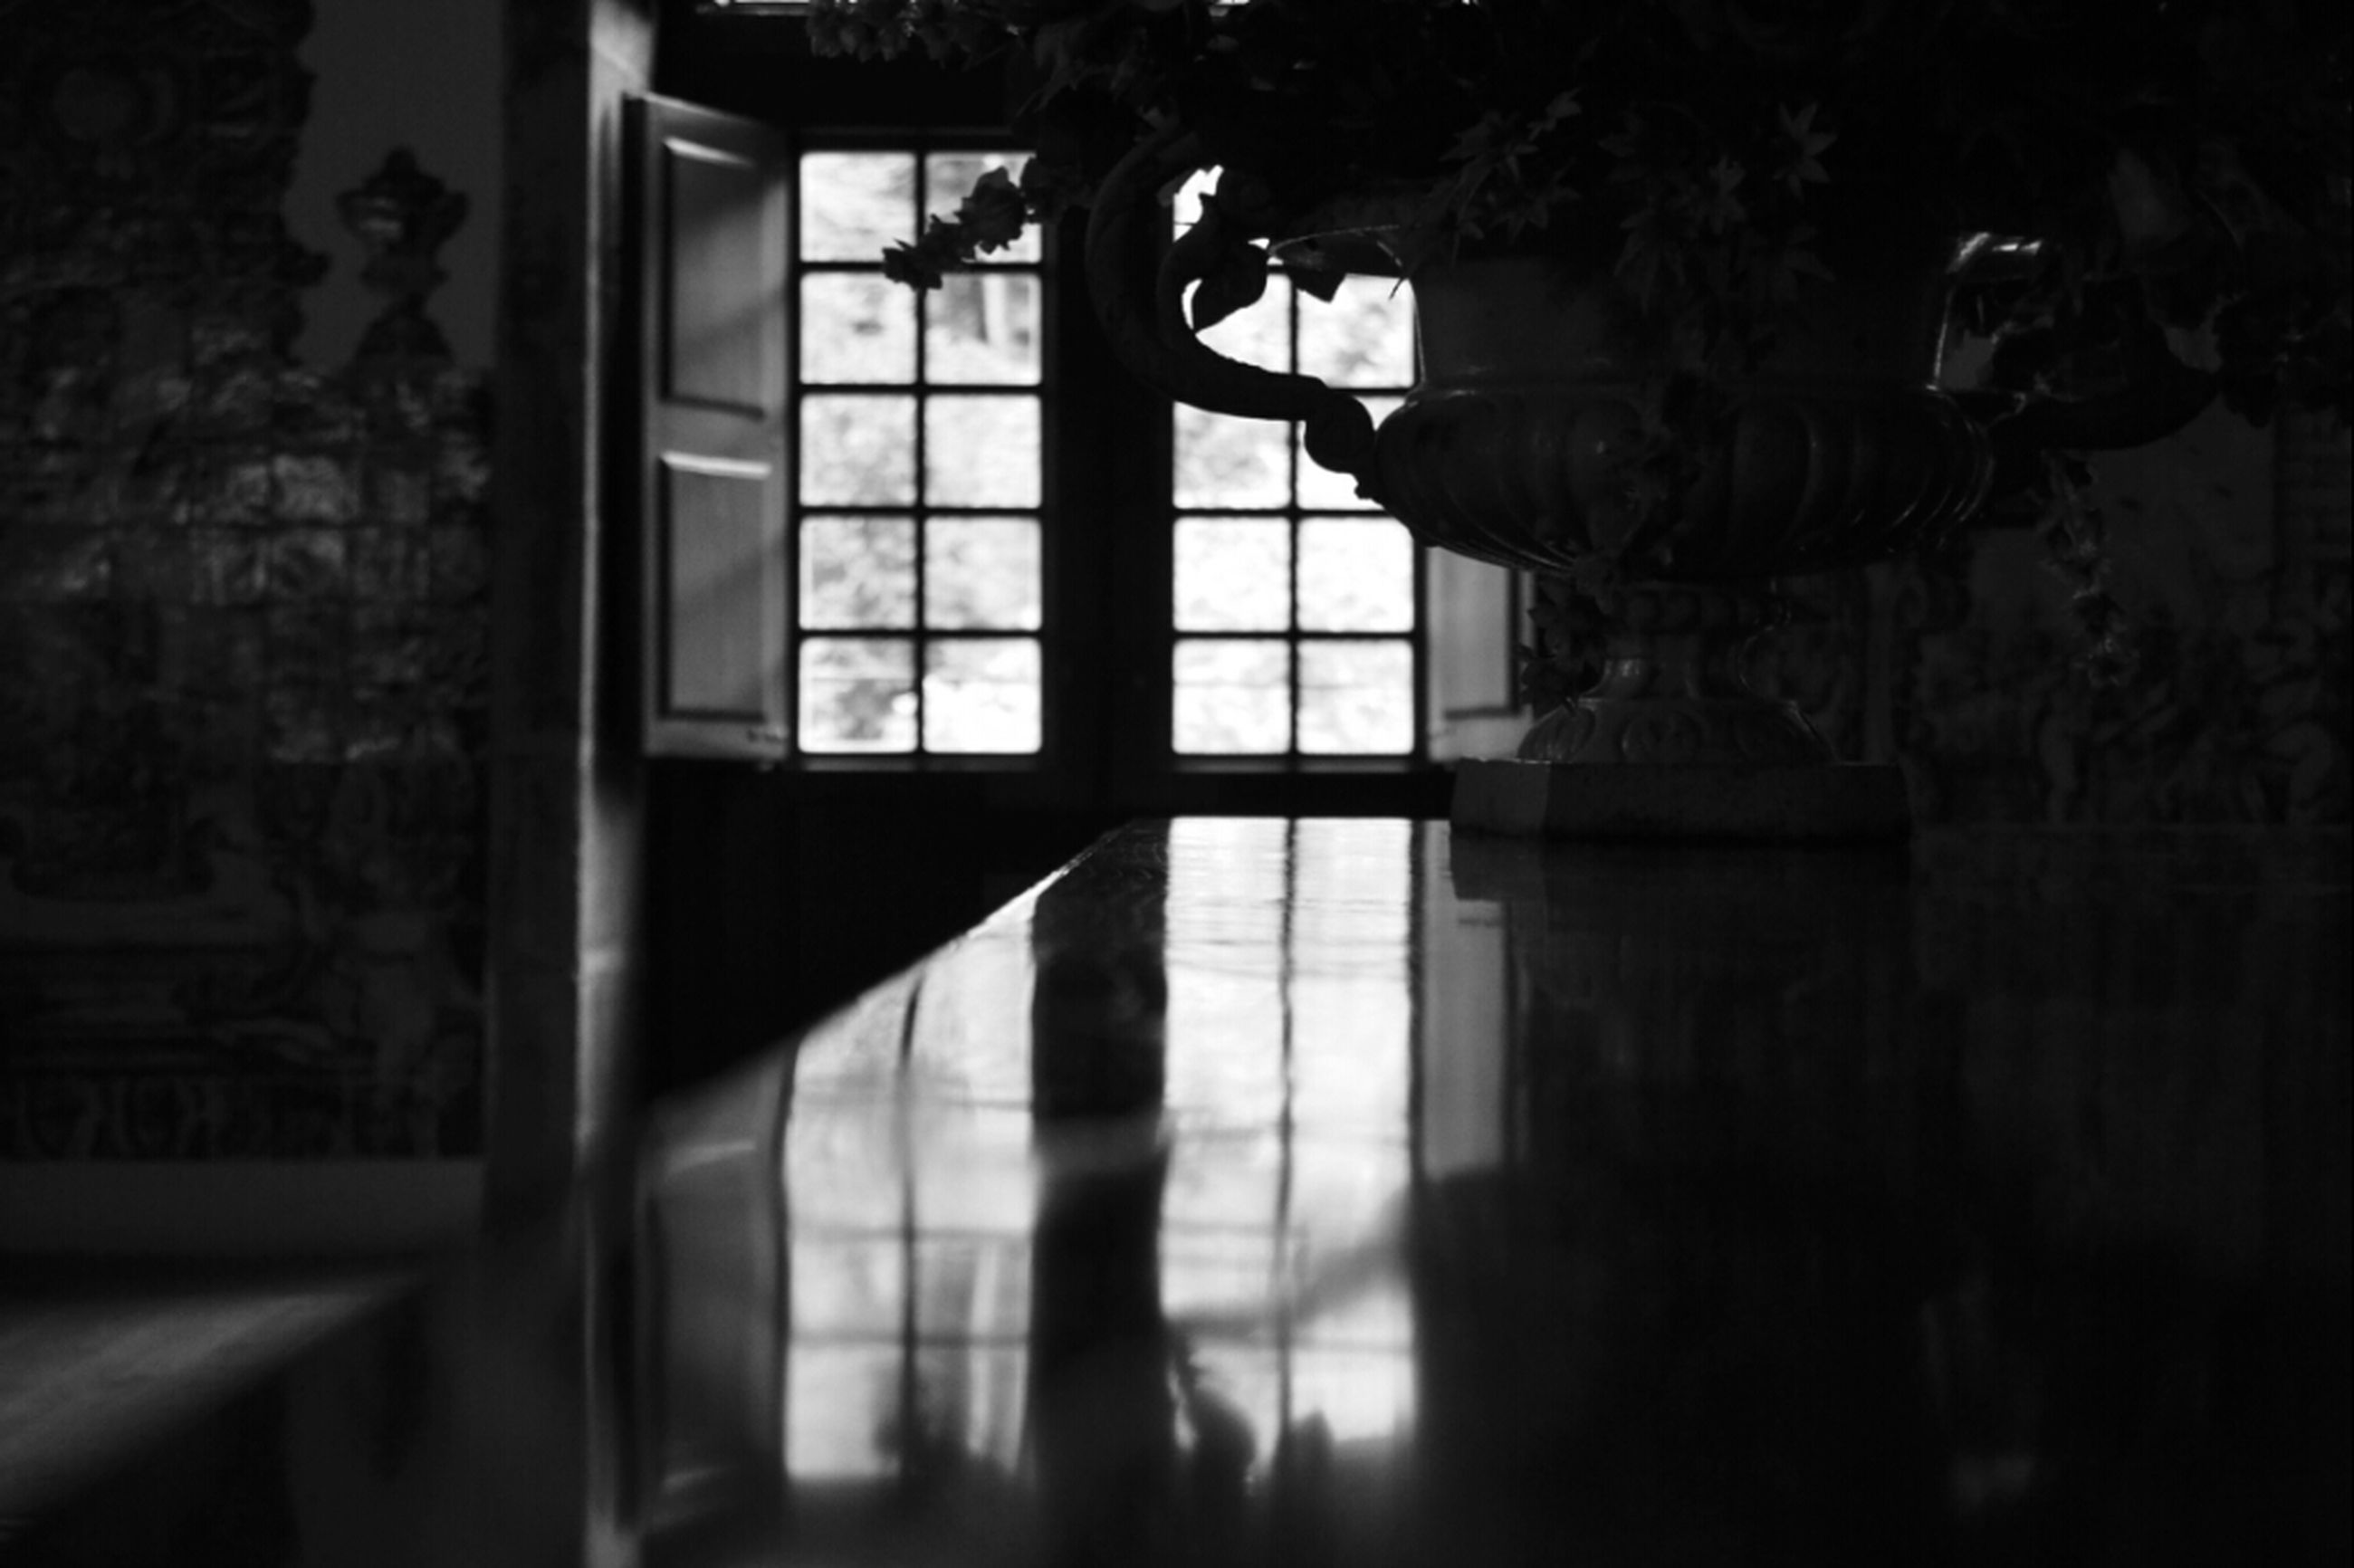 indoors, window, silhouette, shadow, lifestyles, dark, architecture, built structure, wall - building feature, standing, sunlight, home interior, men, flooring, leisure activity, glass - material, person, illuminated